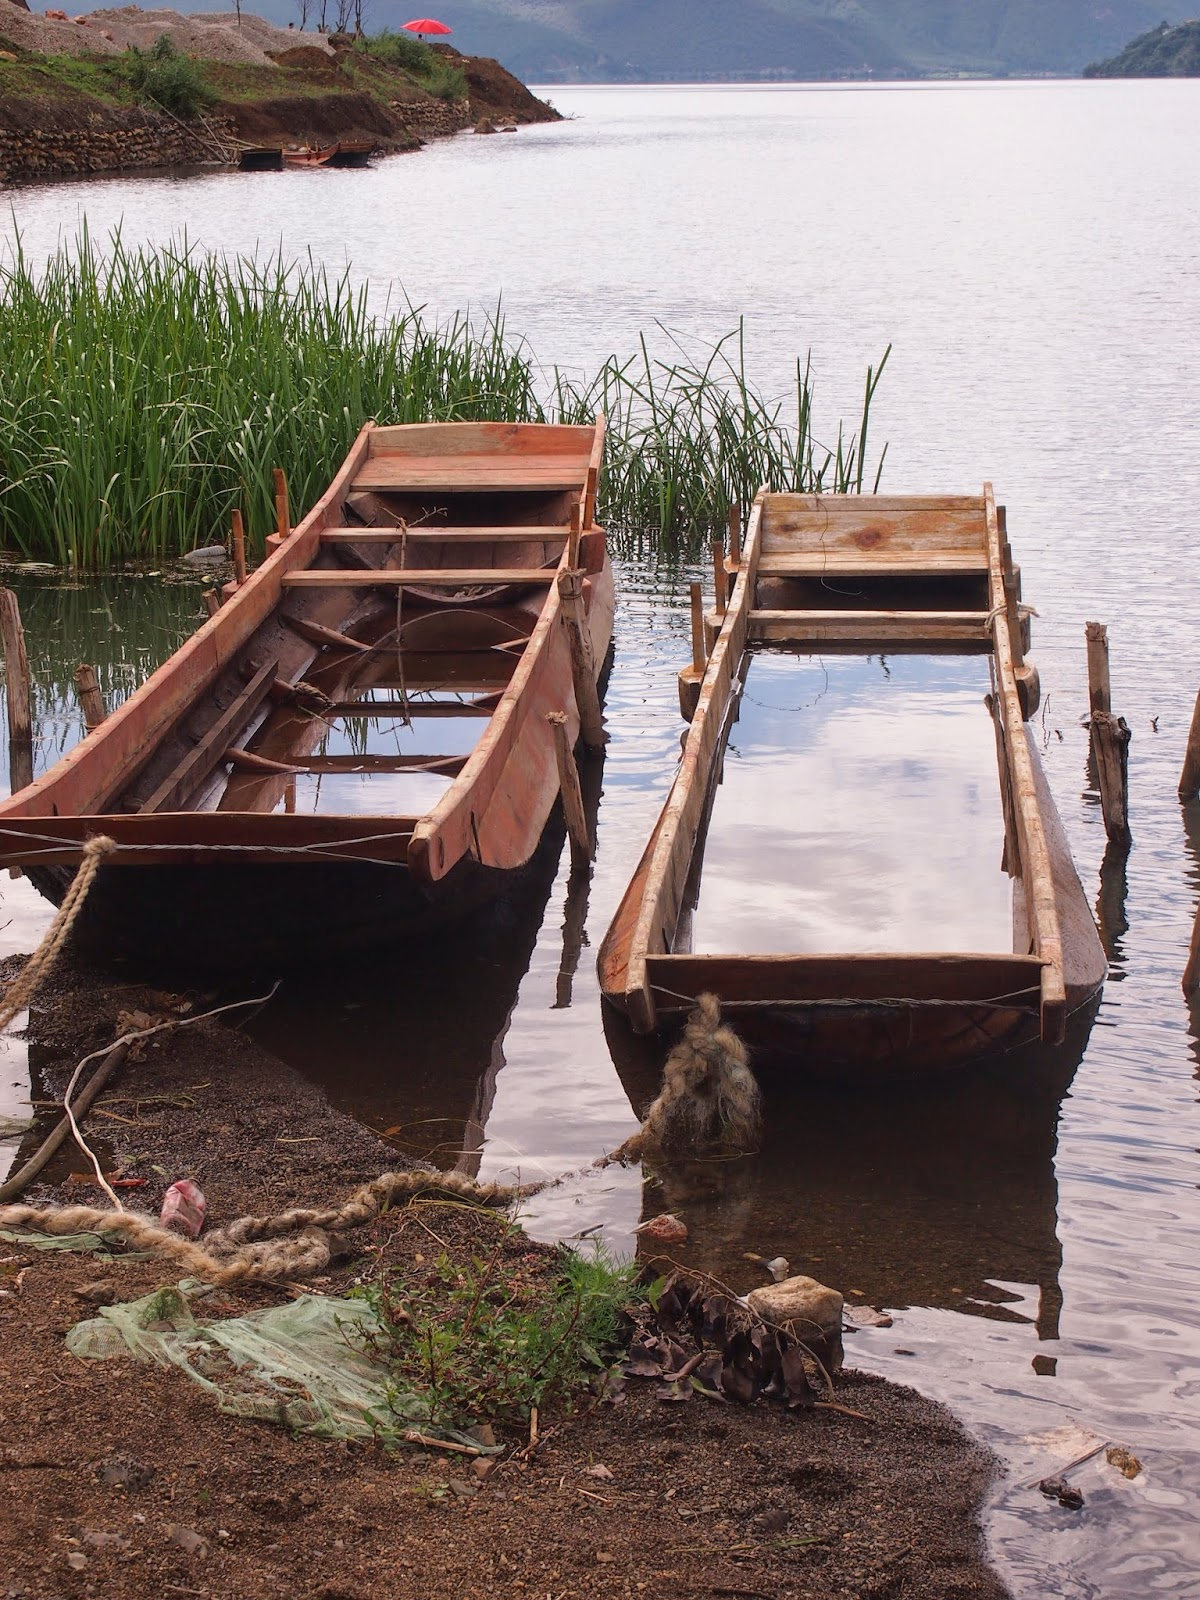 Broken boats filled with water on lugu Lake